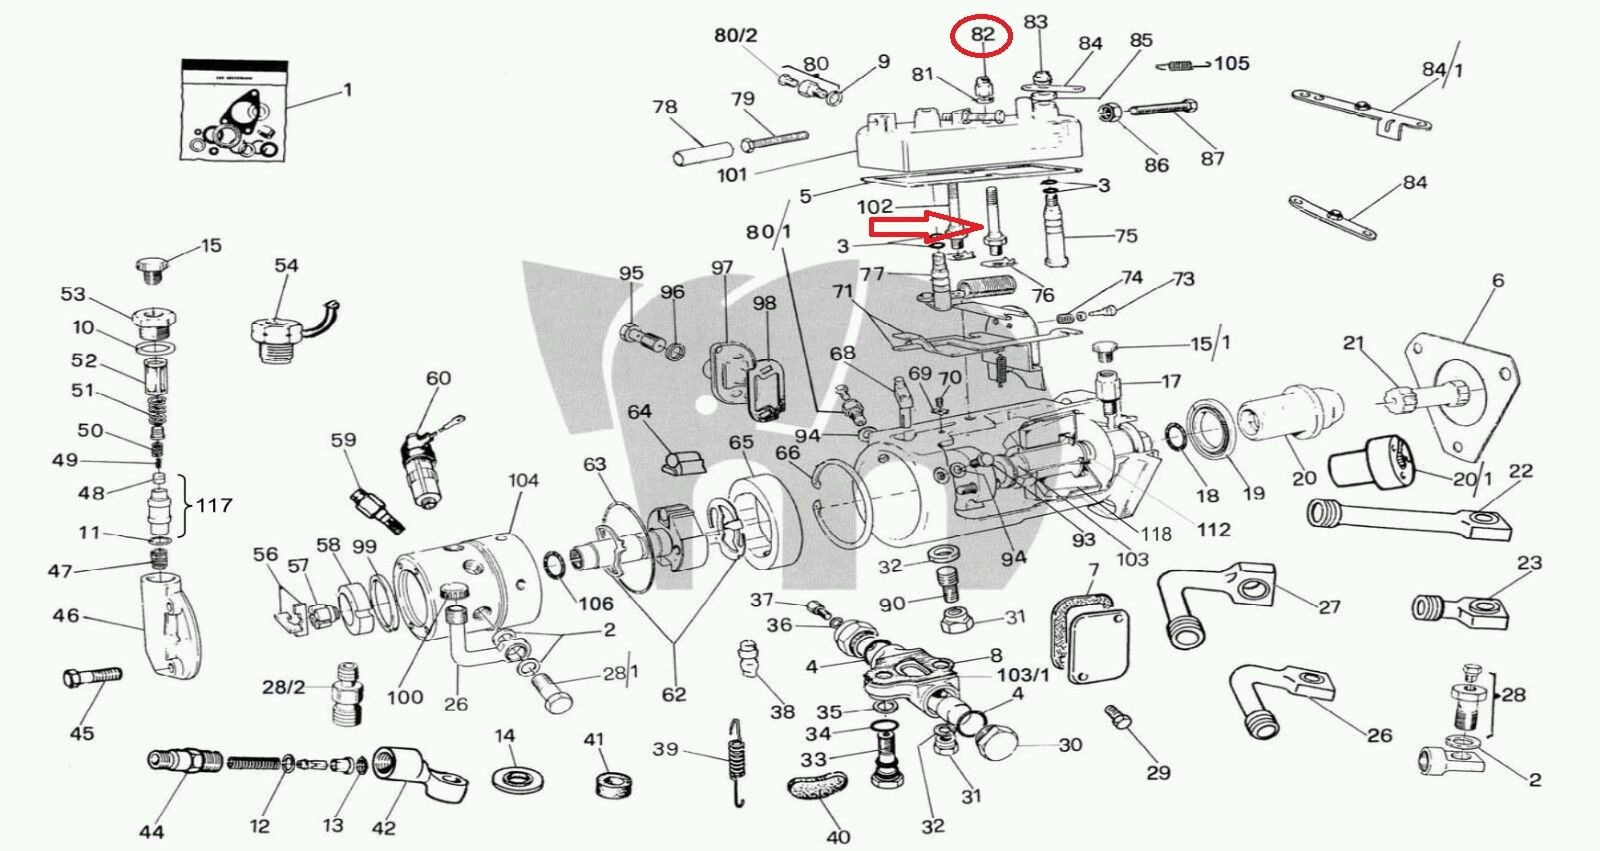 Cav Dpa Top Cover Stud Bolt Screw Nutsel Injection